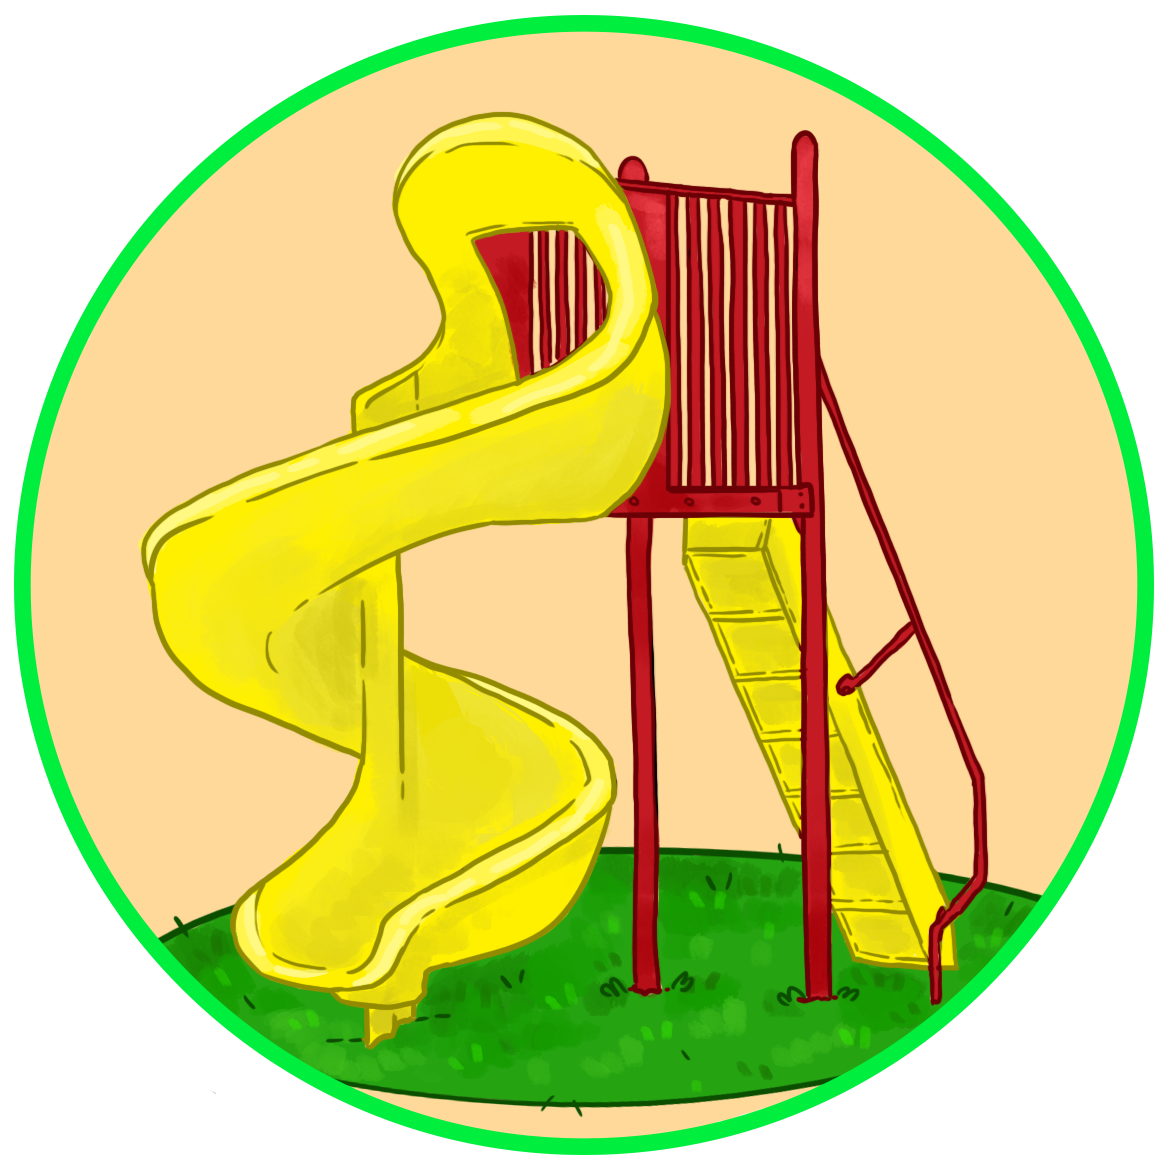 Recess clipart playground. Conquest meghan cornagie